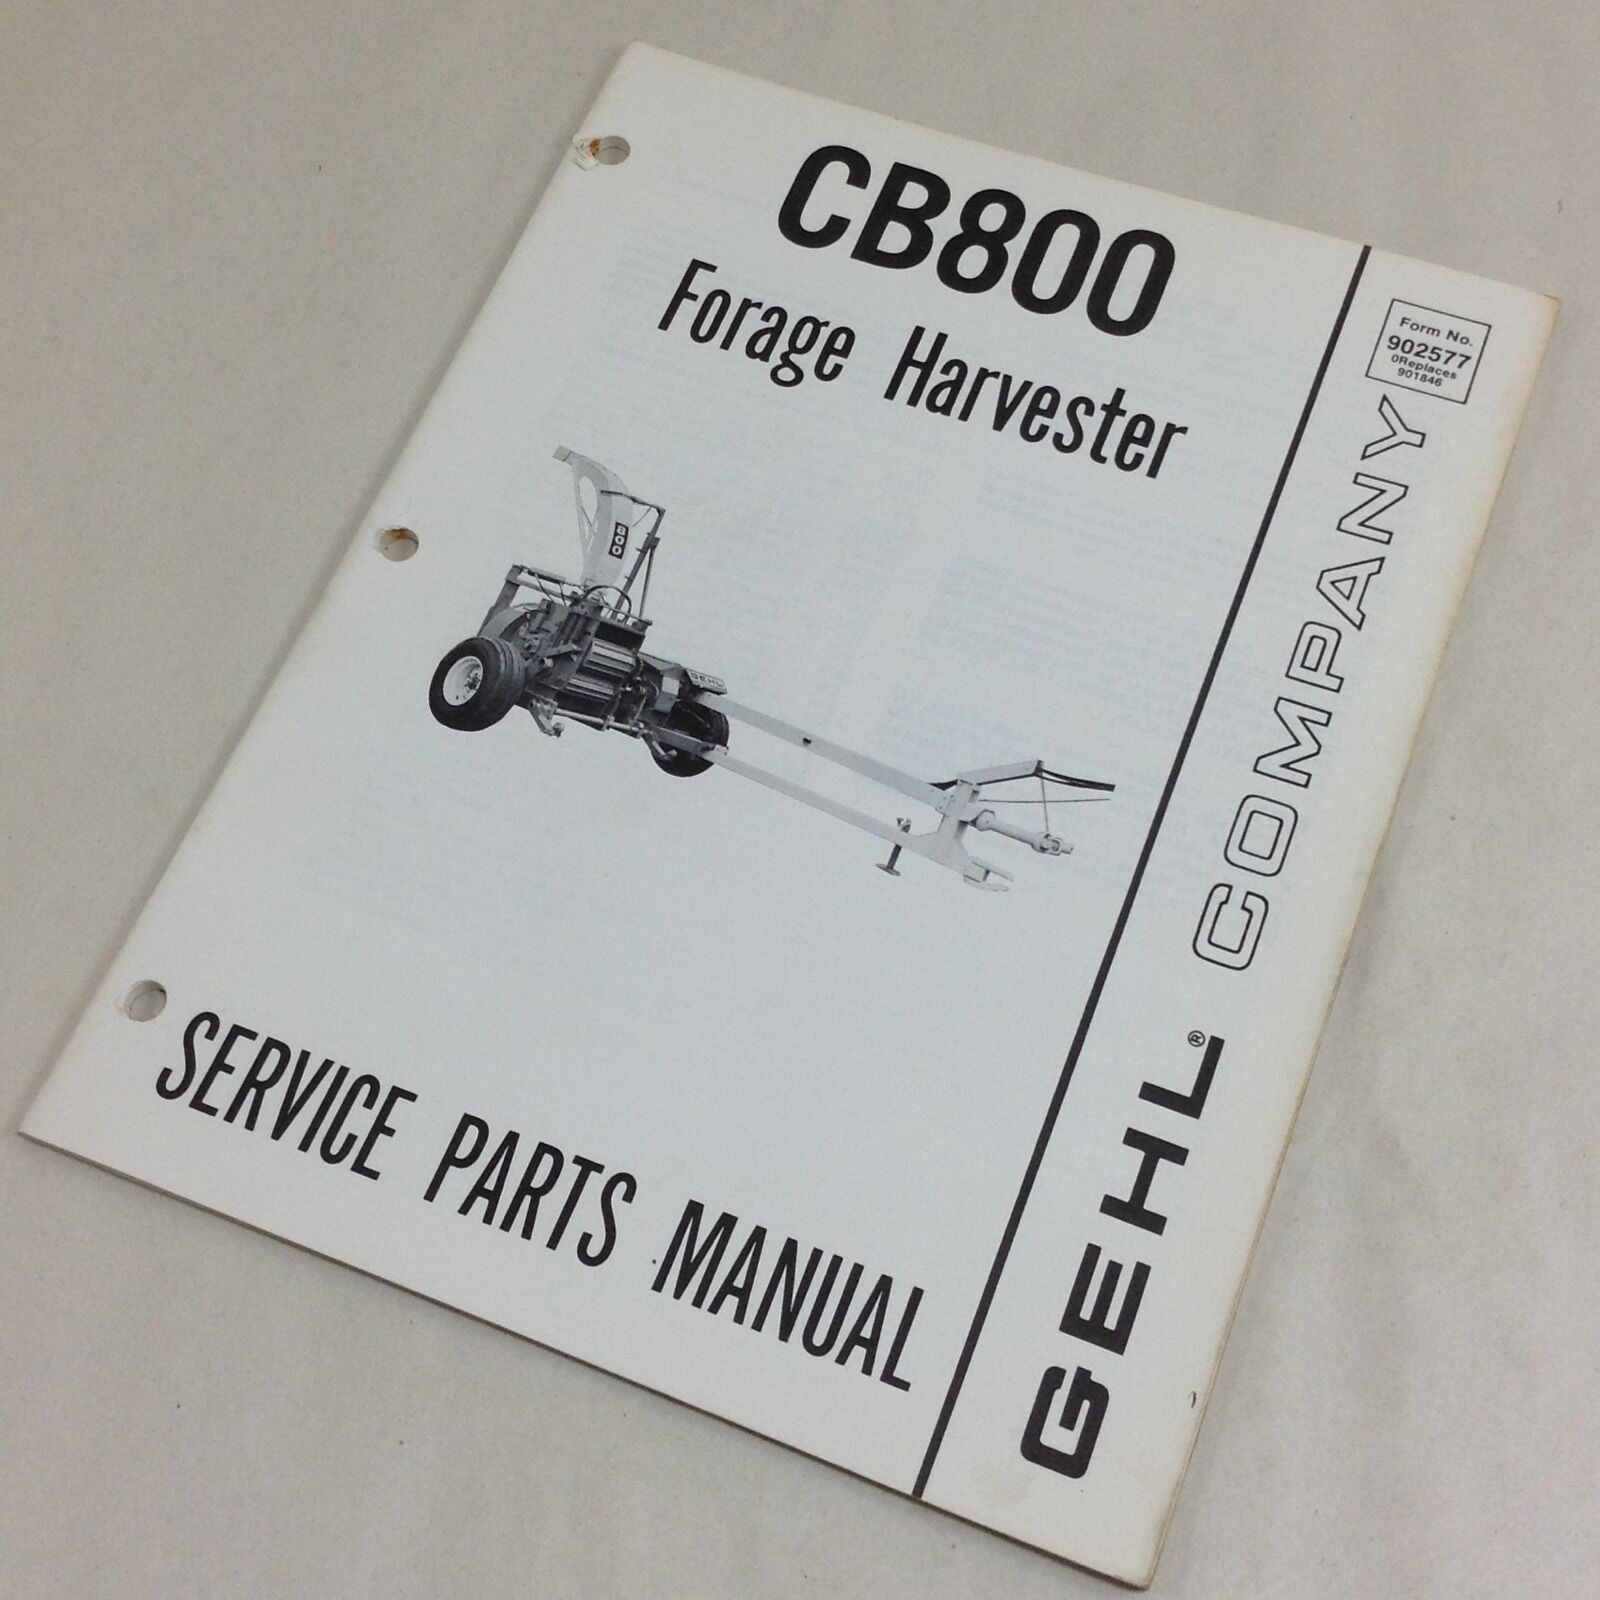 Gehl Cb800 Cb 800 Forage Harvester Parts Manual Ebay Helicopter Diagram Norton Secured Powered By Verisign